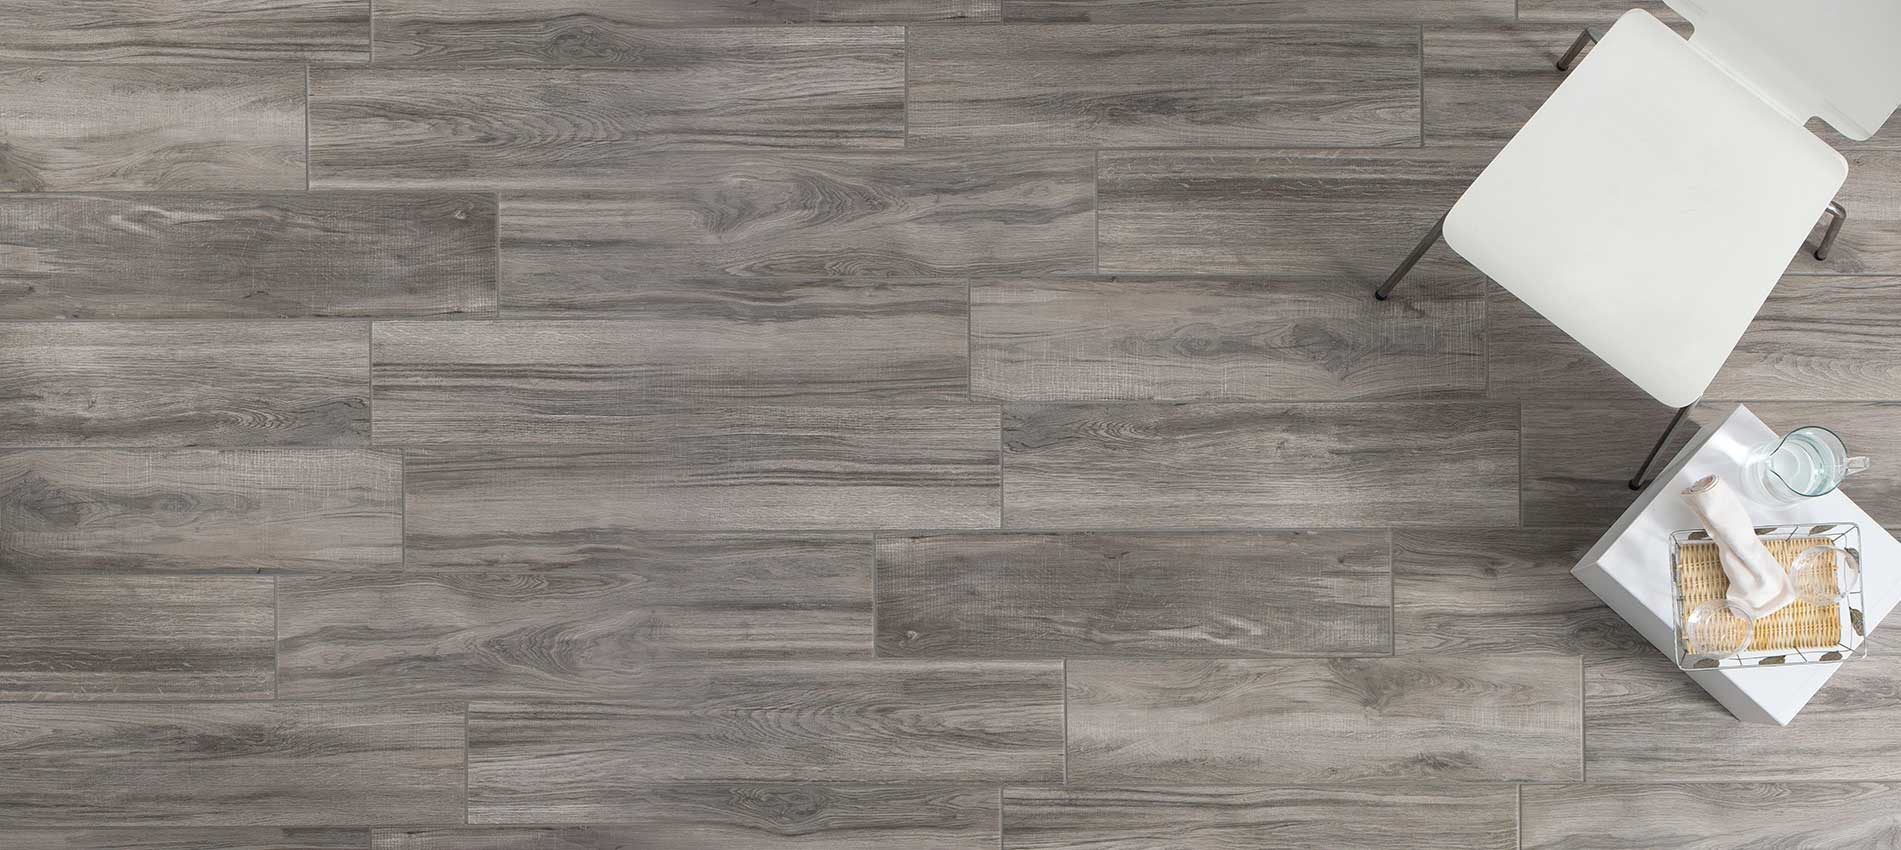 Floors 2000 the premiere wholesale tile flooring located in a premiere ceramic tile distributorimporter in pensacola florida dailygadgetfo Choice Image